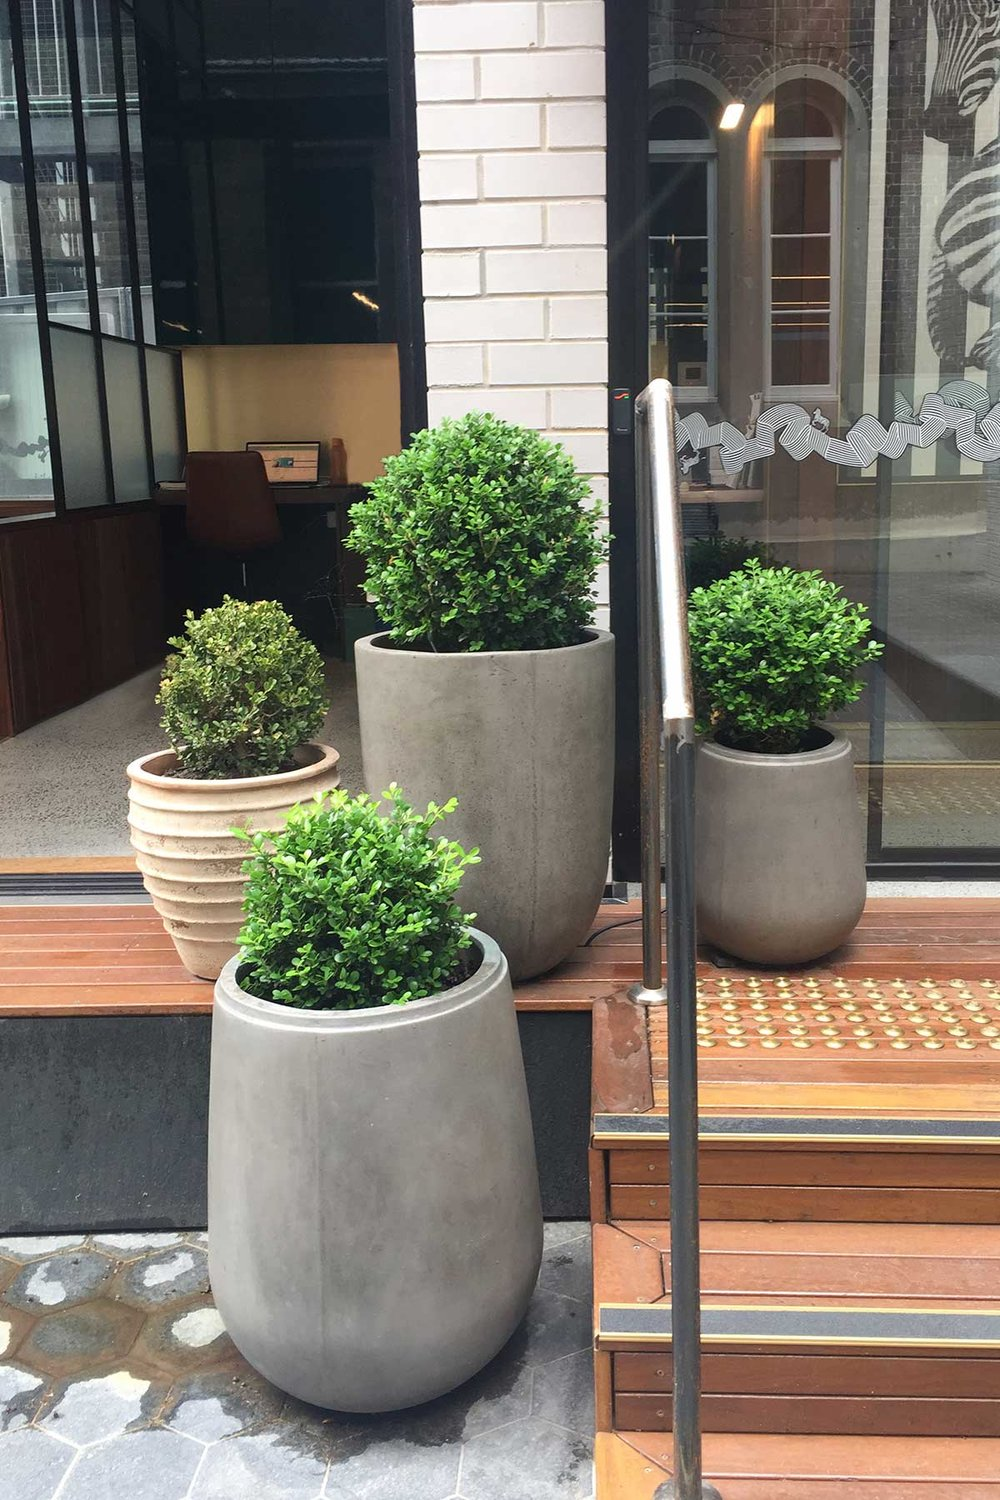 Featuring the 'Gavitella' pot by Moderno ARD, a collaboration between Adam Robinson Design and Garden Life.